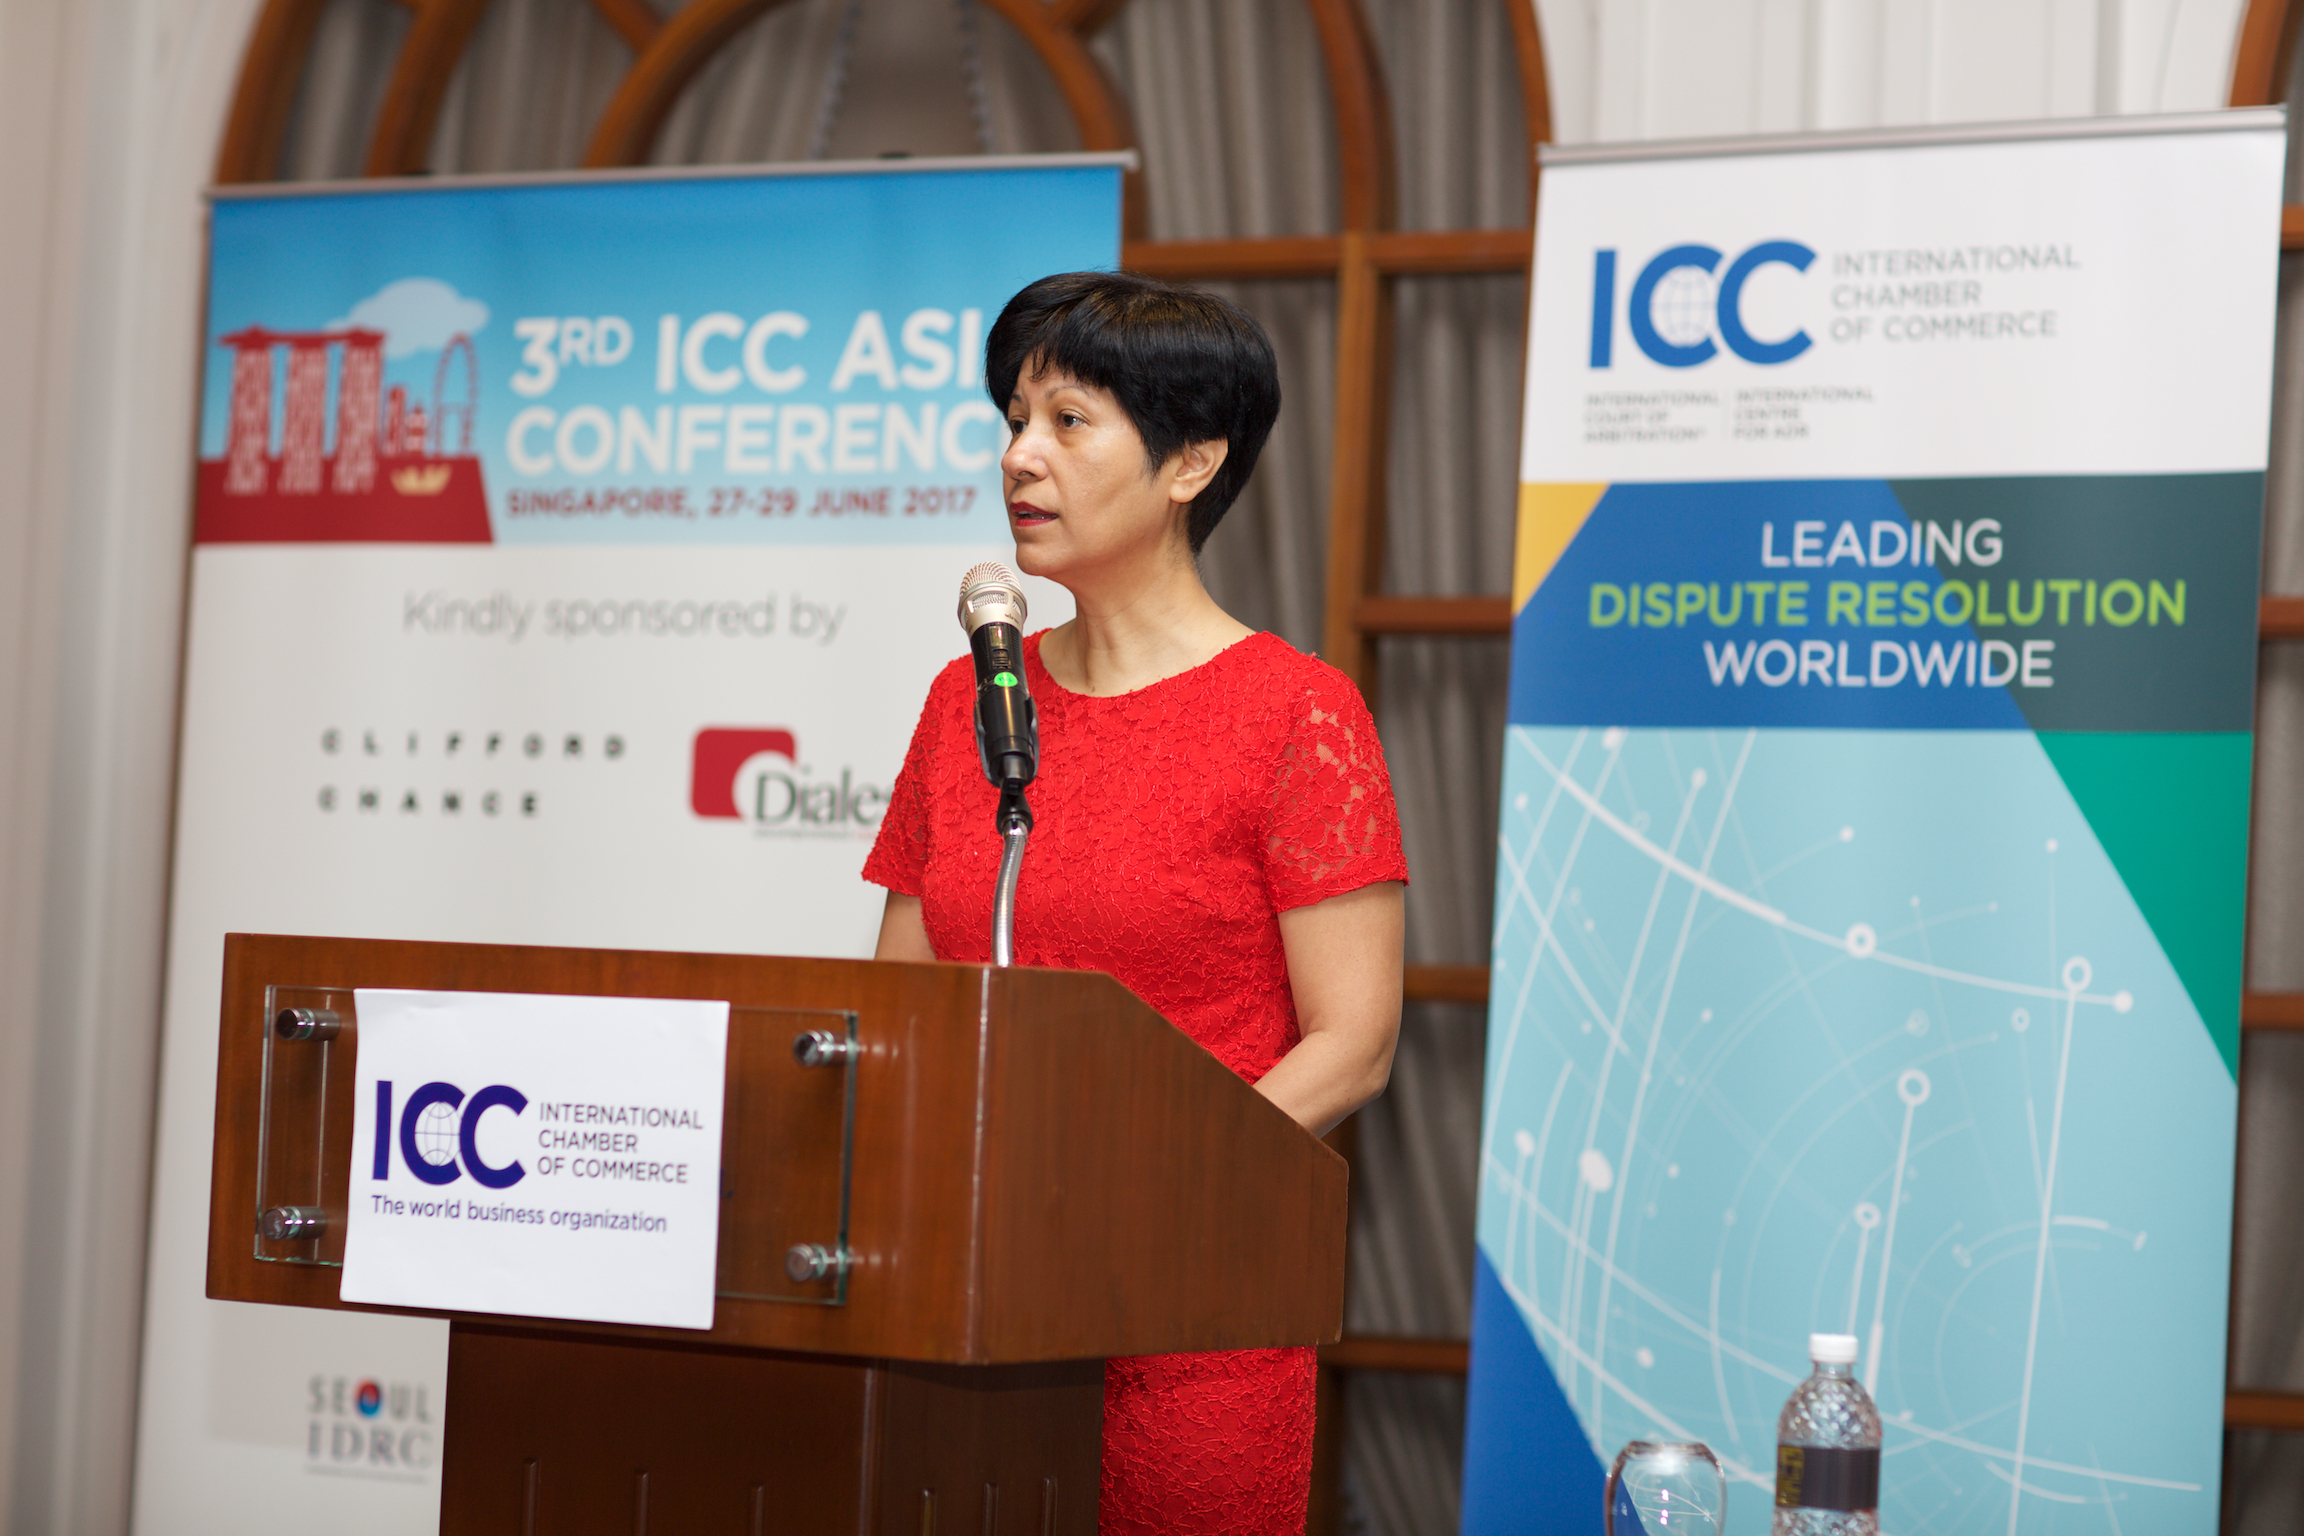 3rd-icc-asia-conference-on-international-arbitration_35415026672_o.jpg